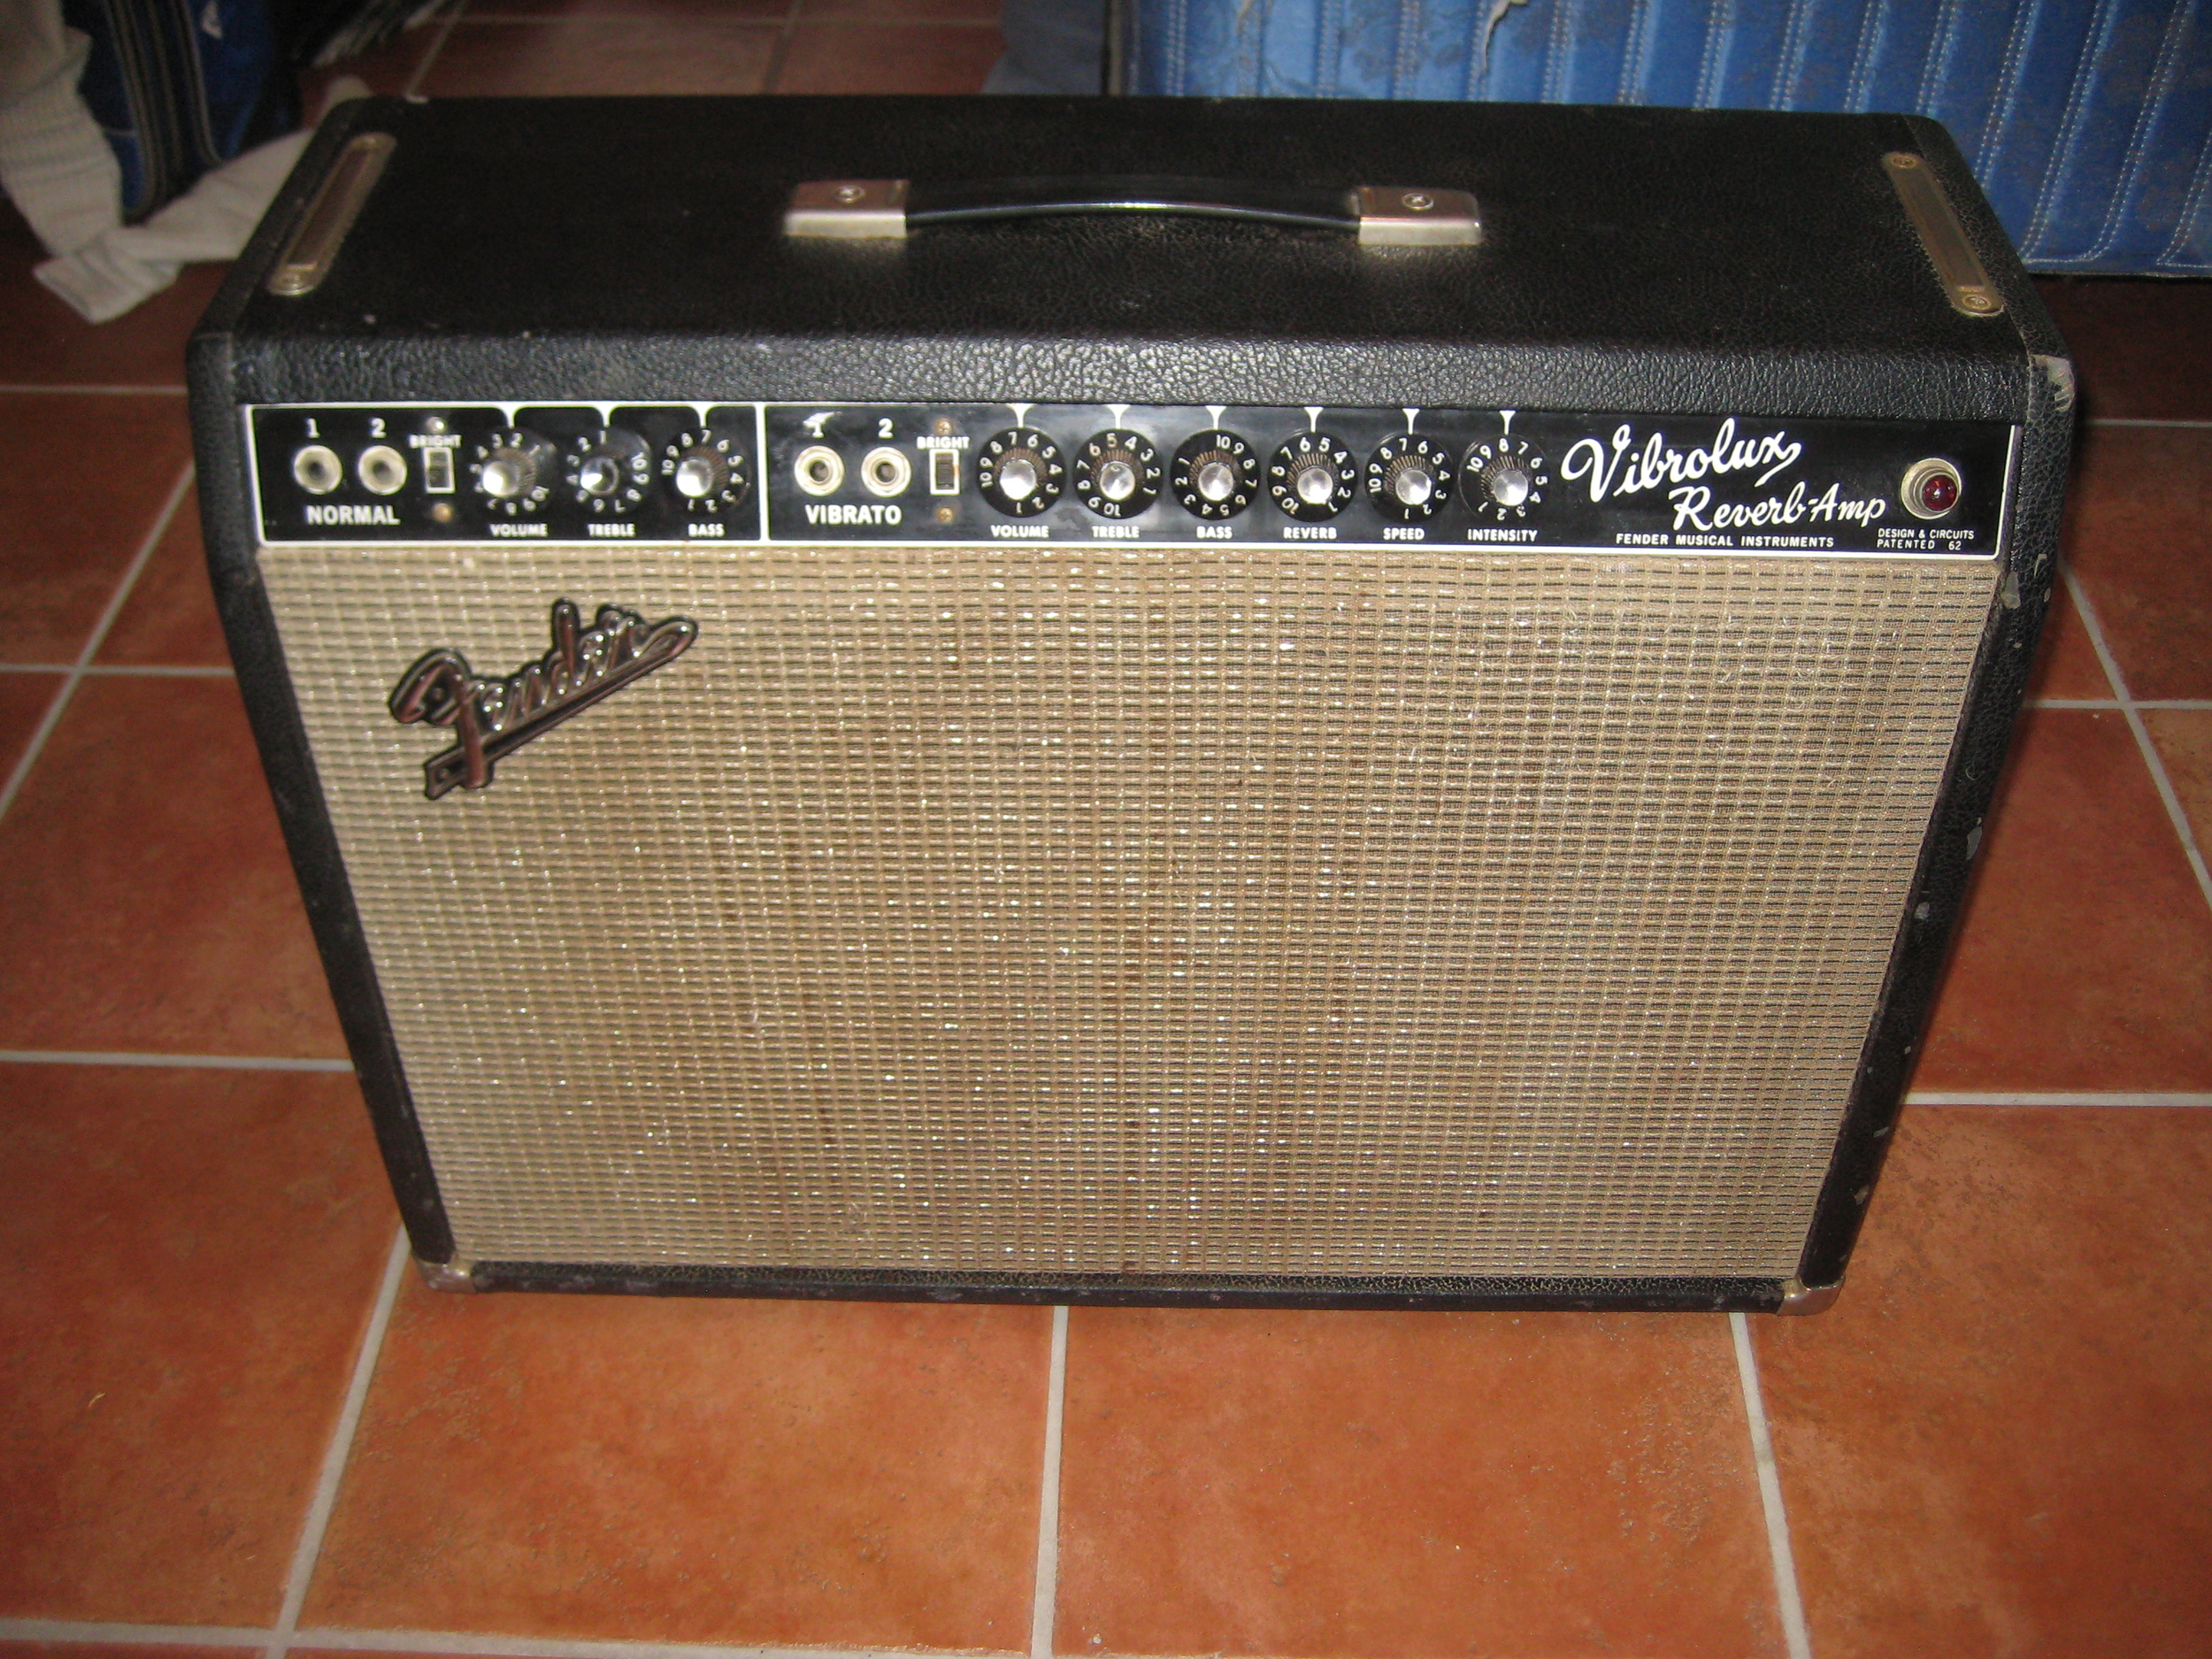 A customer brought in this vintage Fender Vibrolux for restoration. When it arrived it really sounded poorly. It was re-capped, re-tubed, a three prong cord added and few resistors changed. Now it sounds amazing!